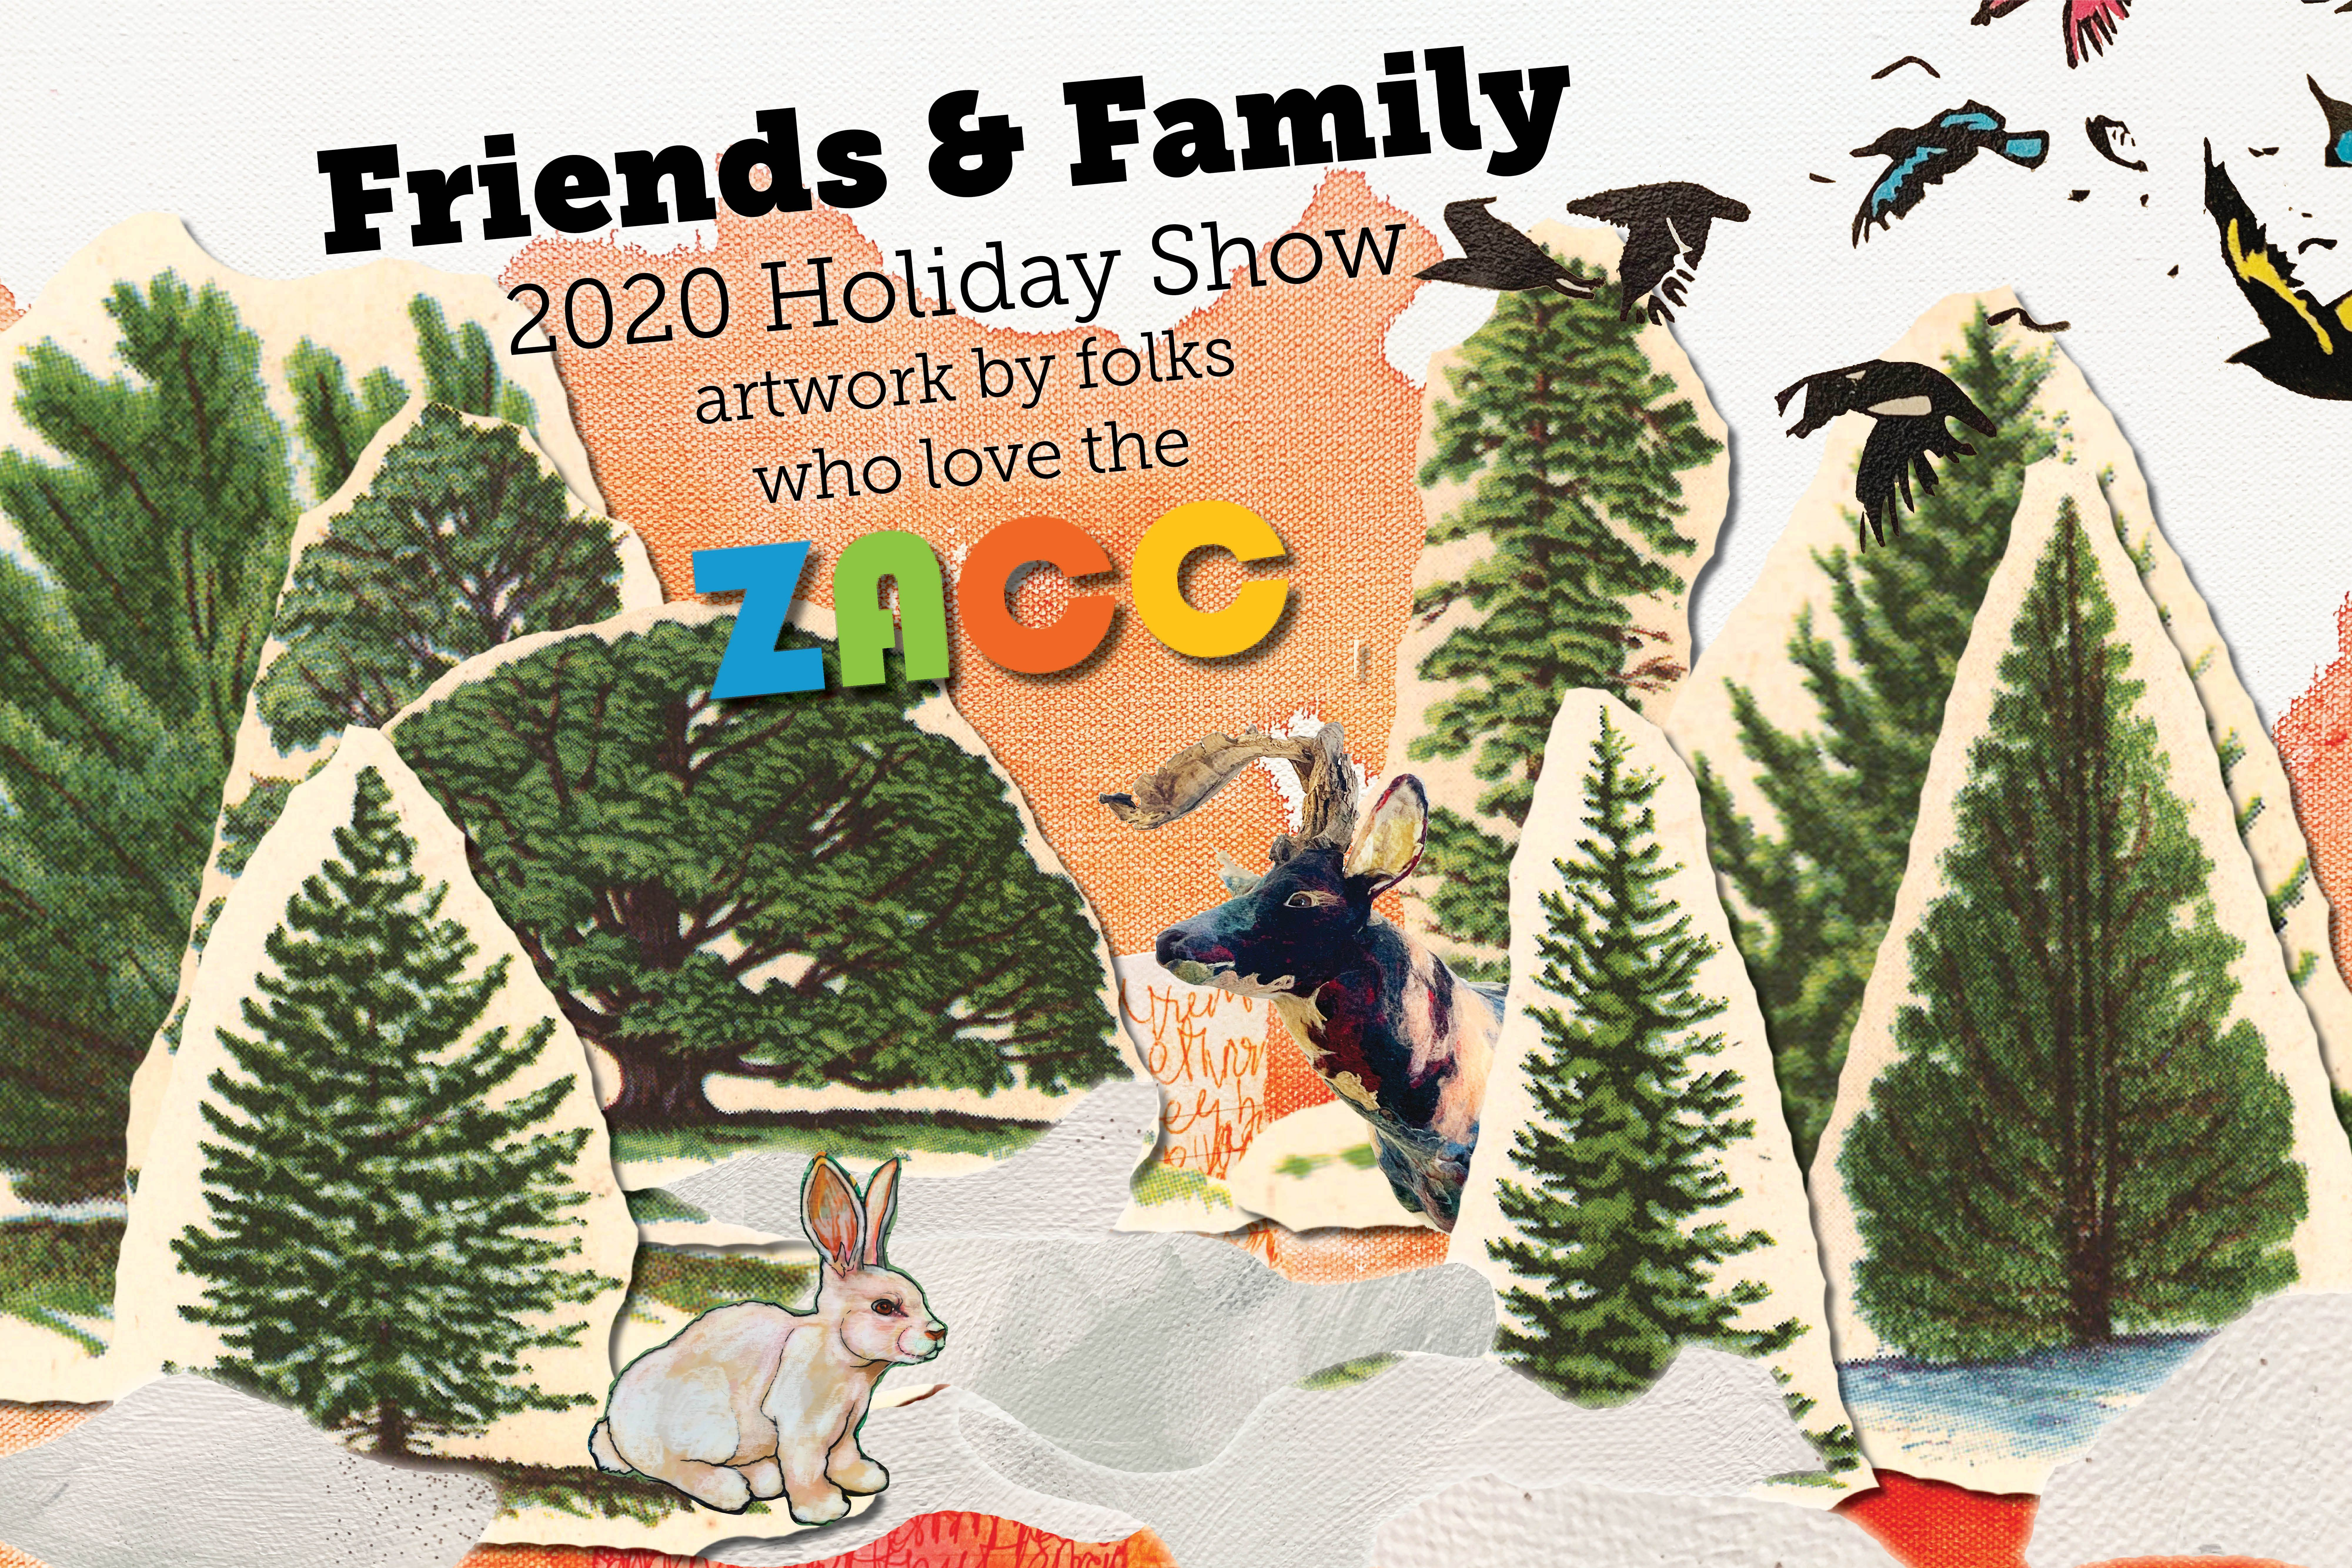 Friends & Family Holiday Show in the Main Gallery